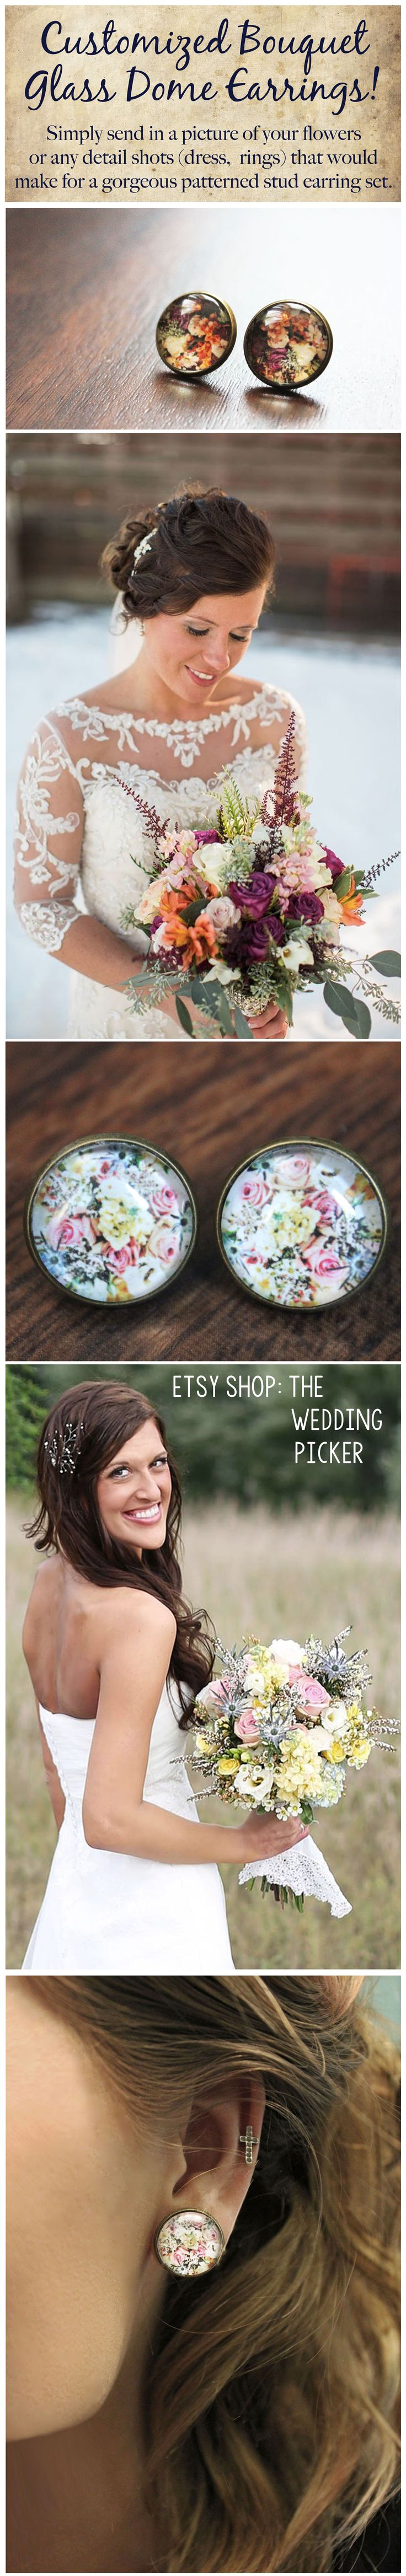 Customized Wedding Bouquet earrings! Great anniversary gift! Keepsake earrings. Floral pattern is perfect for everyday wear!